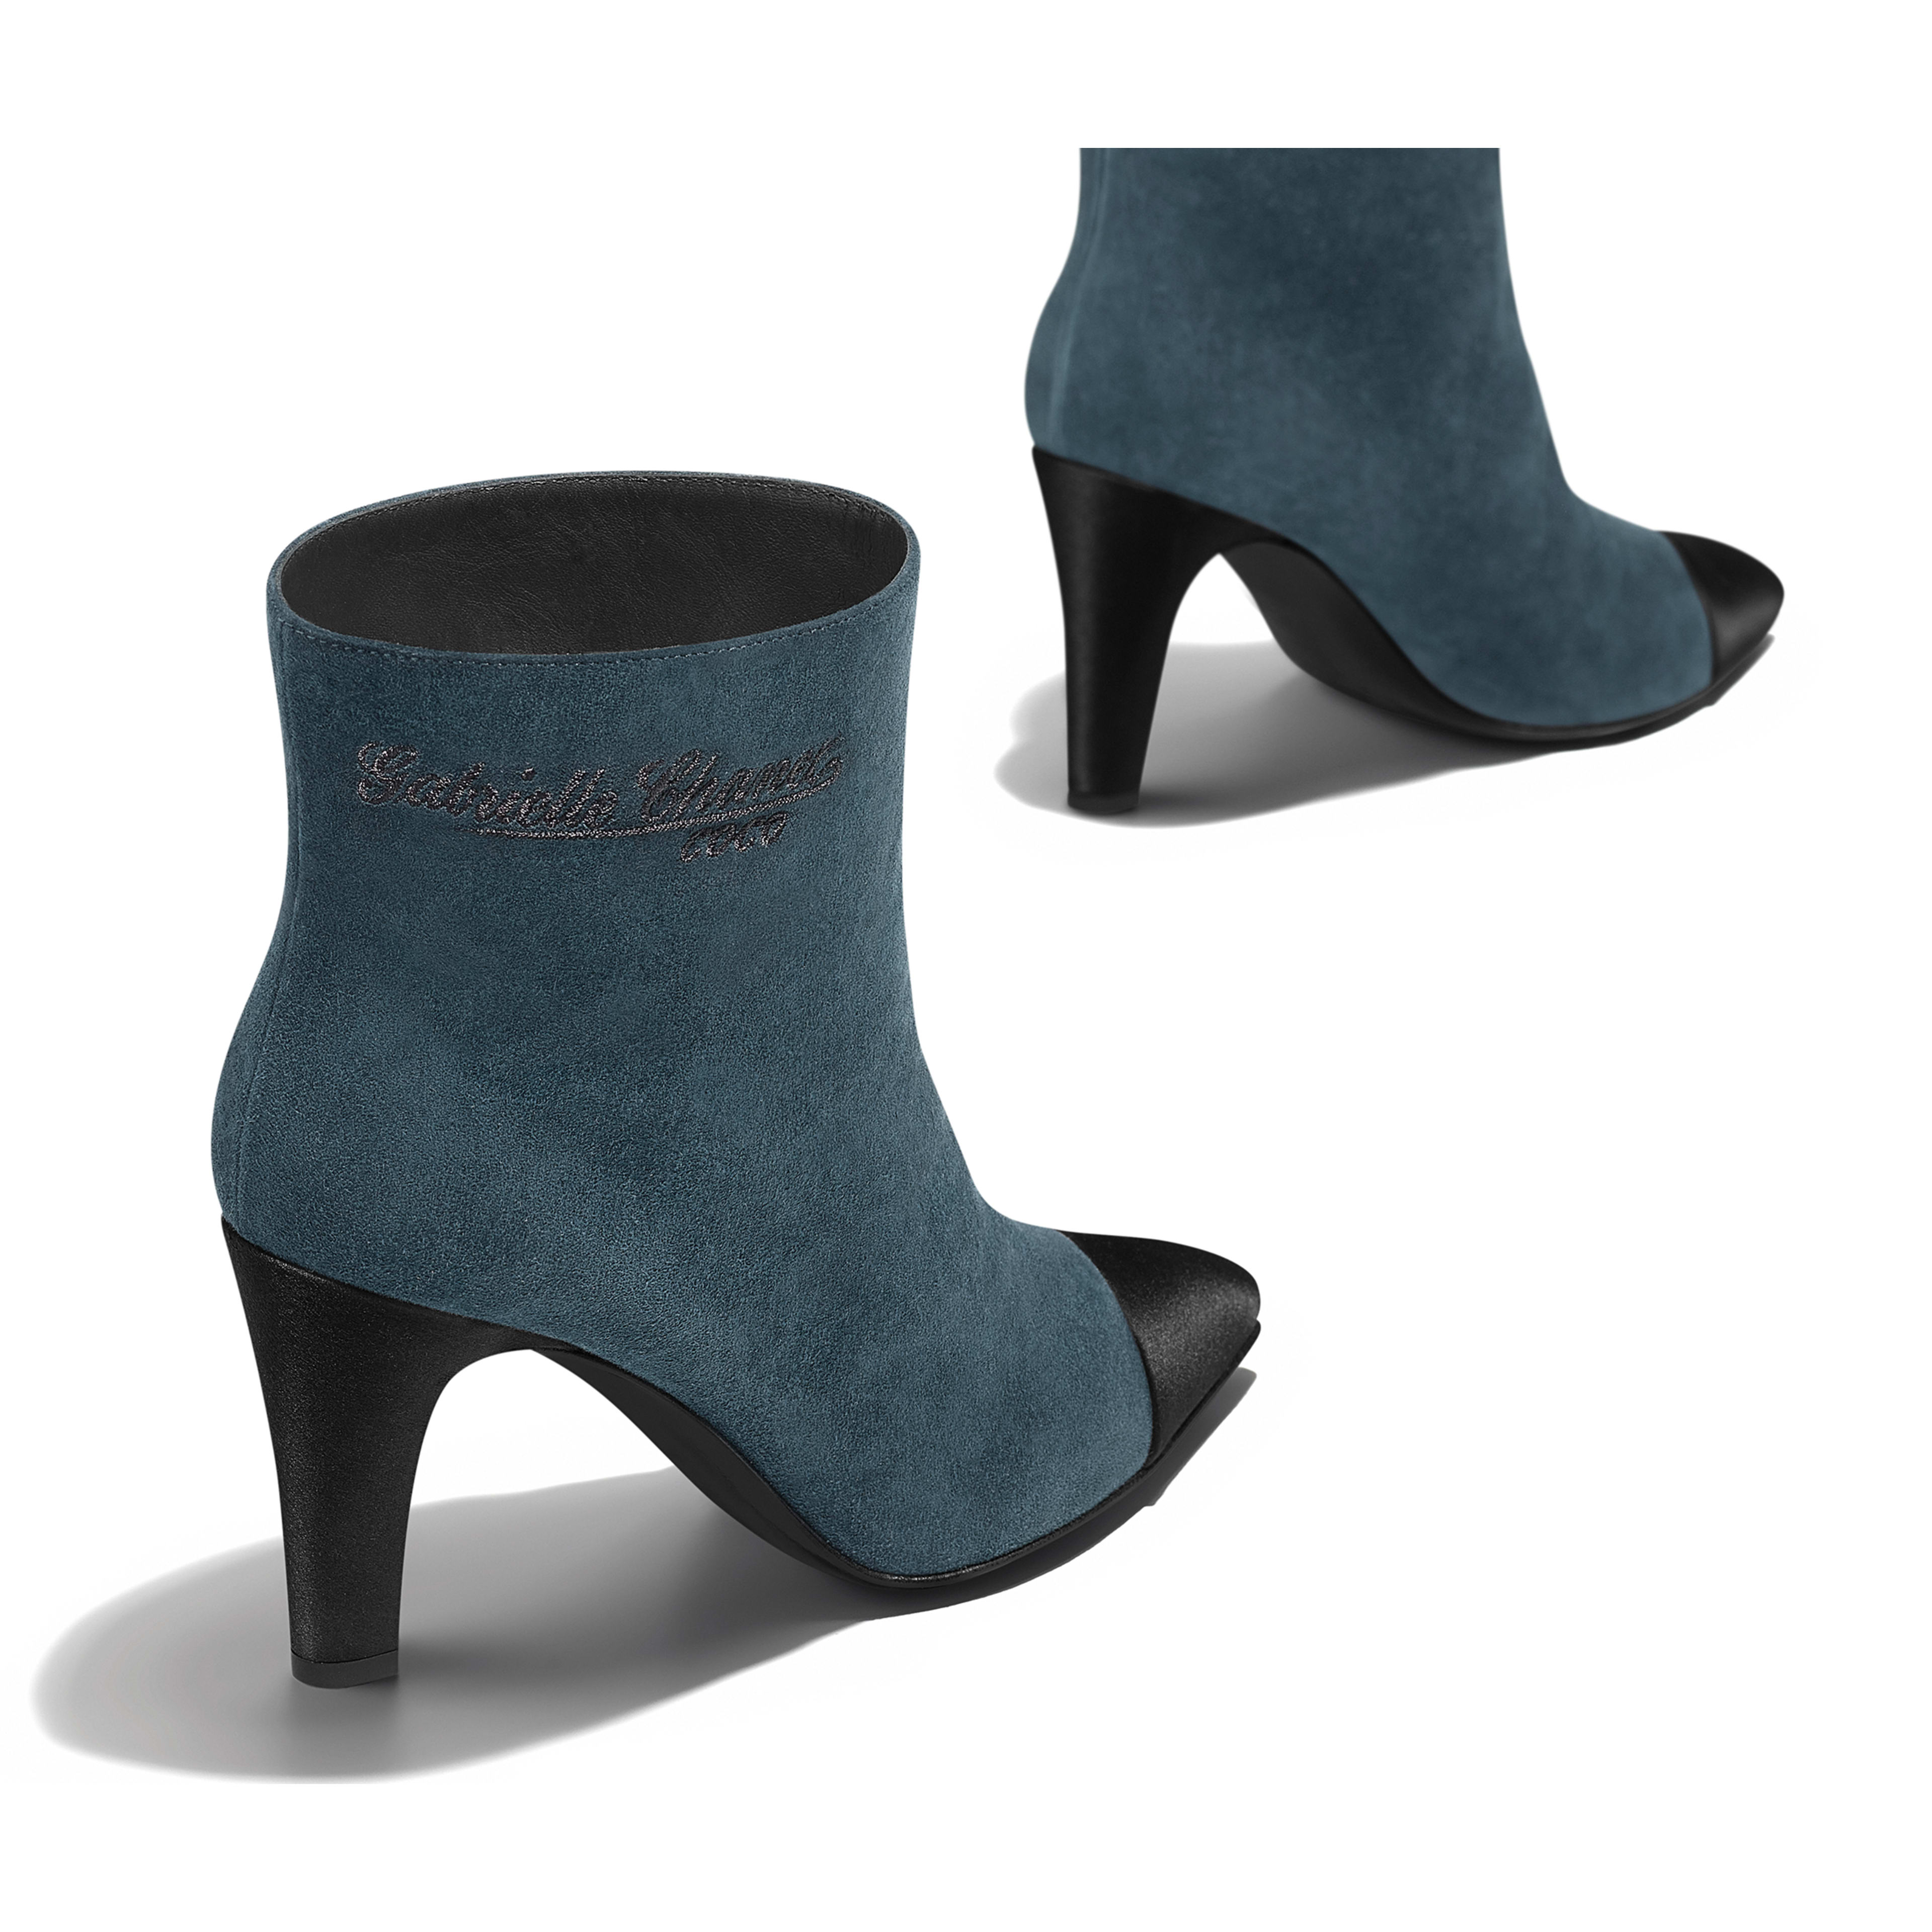 Short Boots - Blue & Black - Suede Calfskin & Satin - Other view - see full sized version